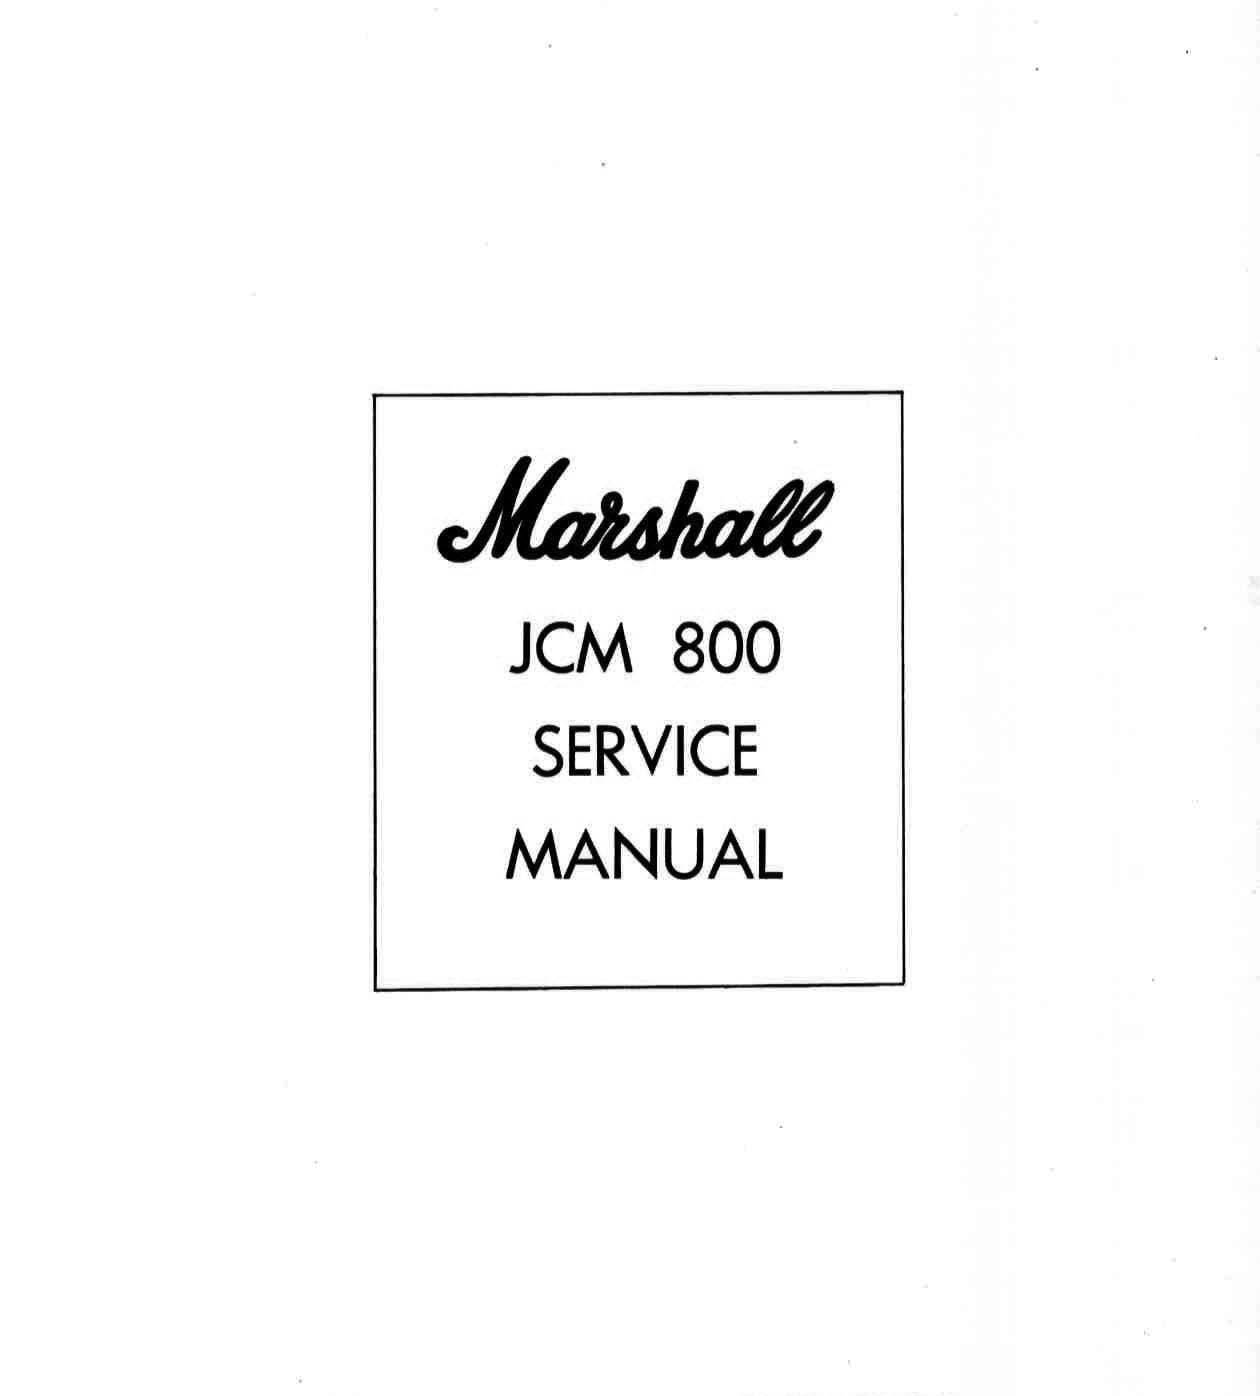 Marshall JCM 800 Amplifier Service Manual and 50 similar items on